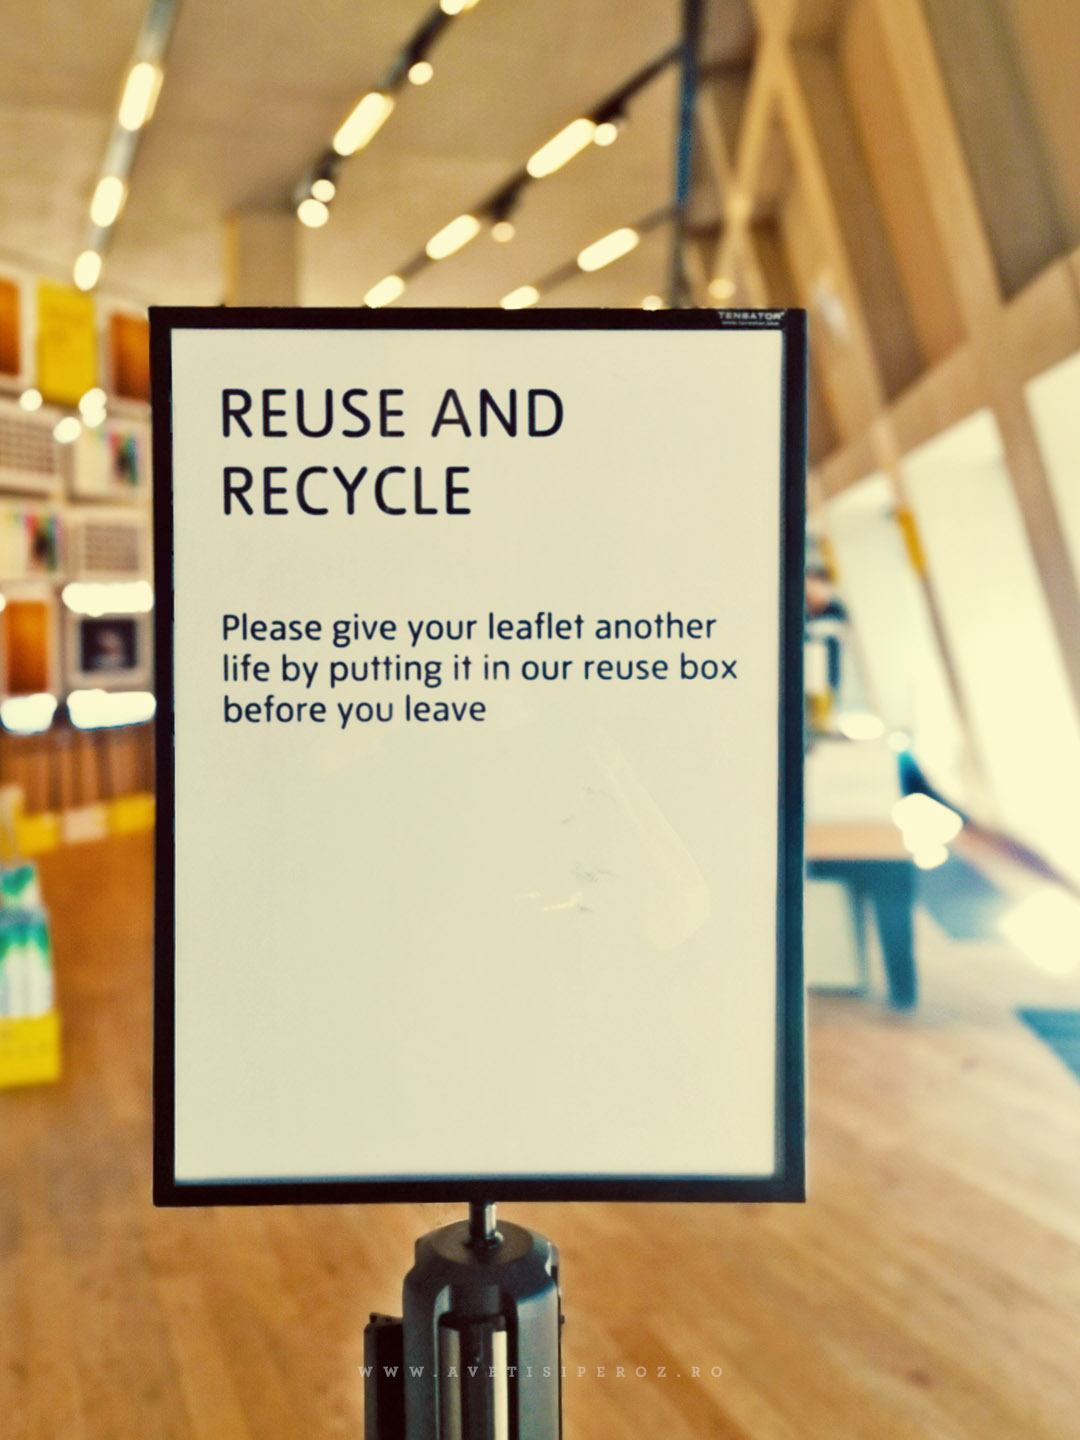 reuse and recycle tate museum